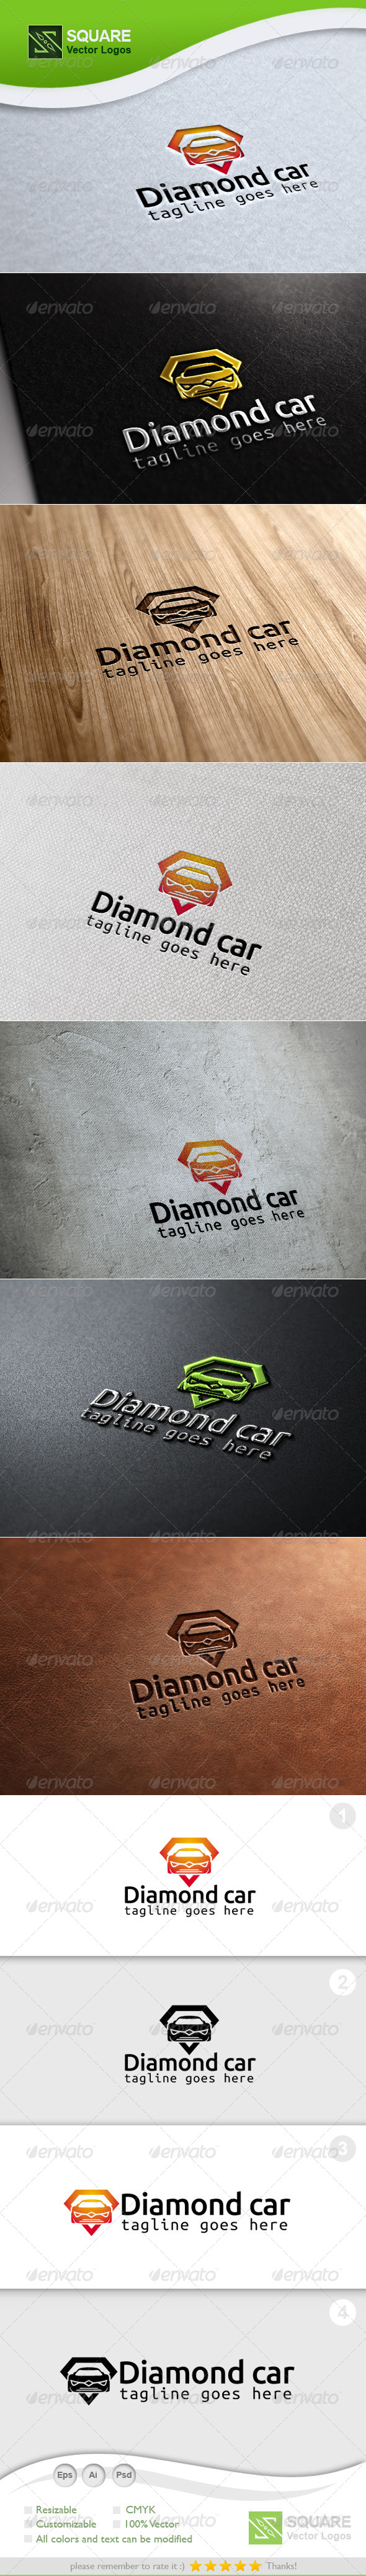 Diamond, Car Vector Logo Template - Symbols Logo Templates